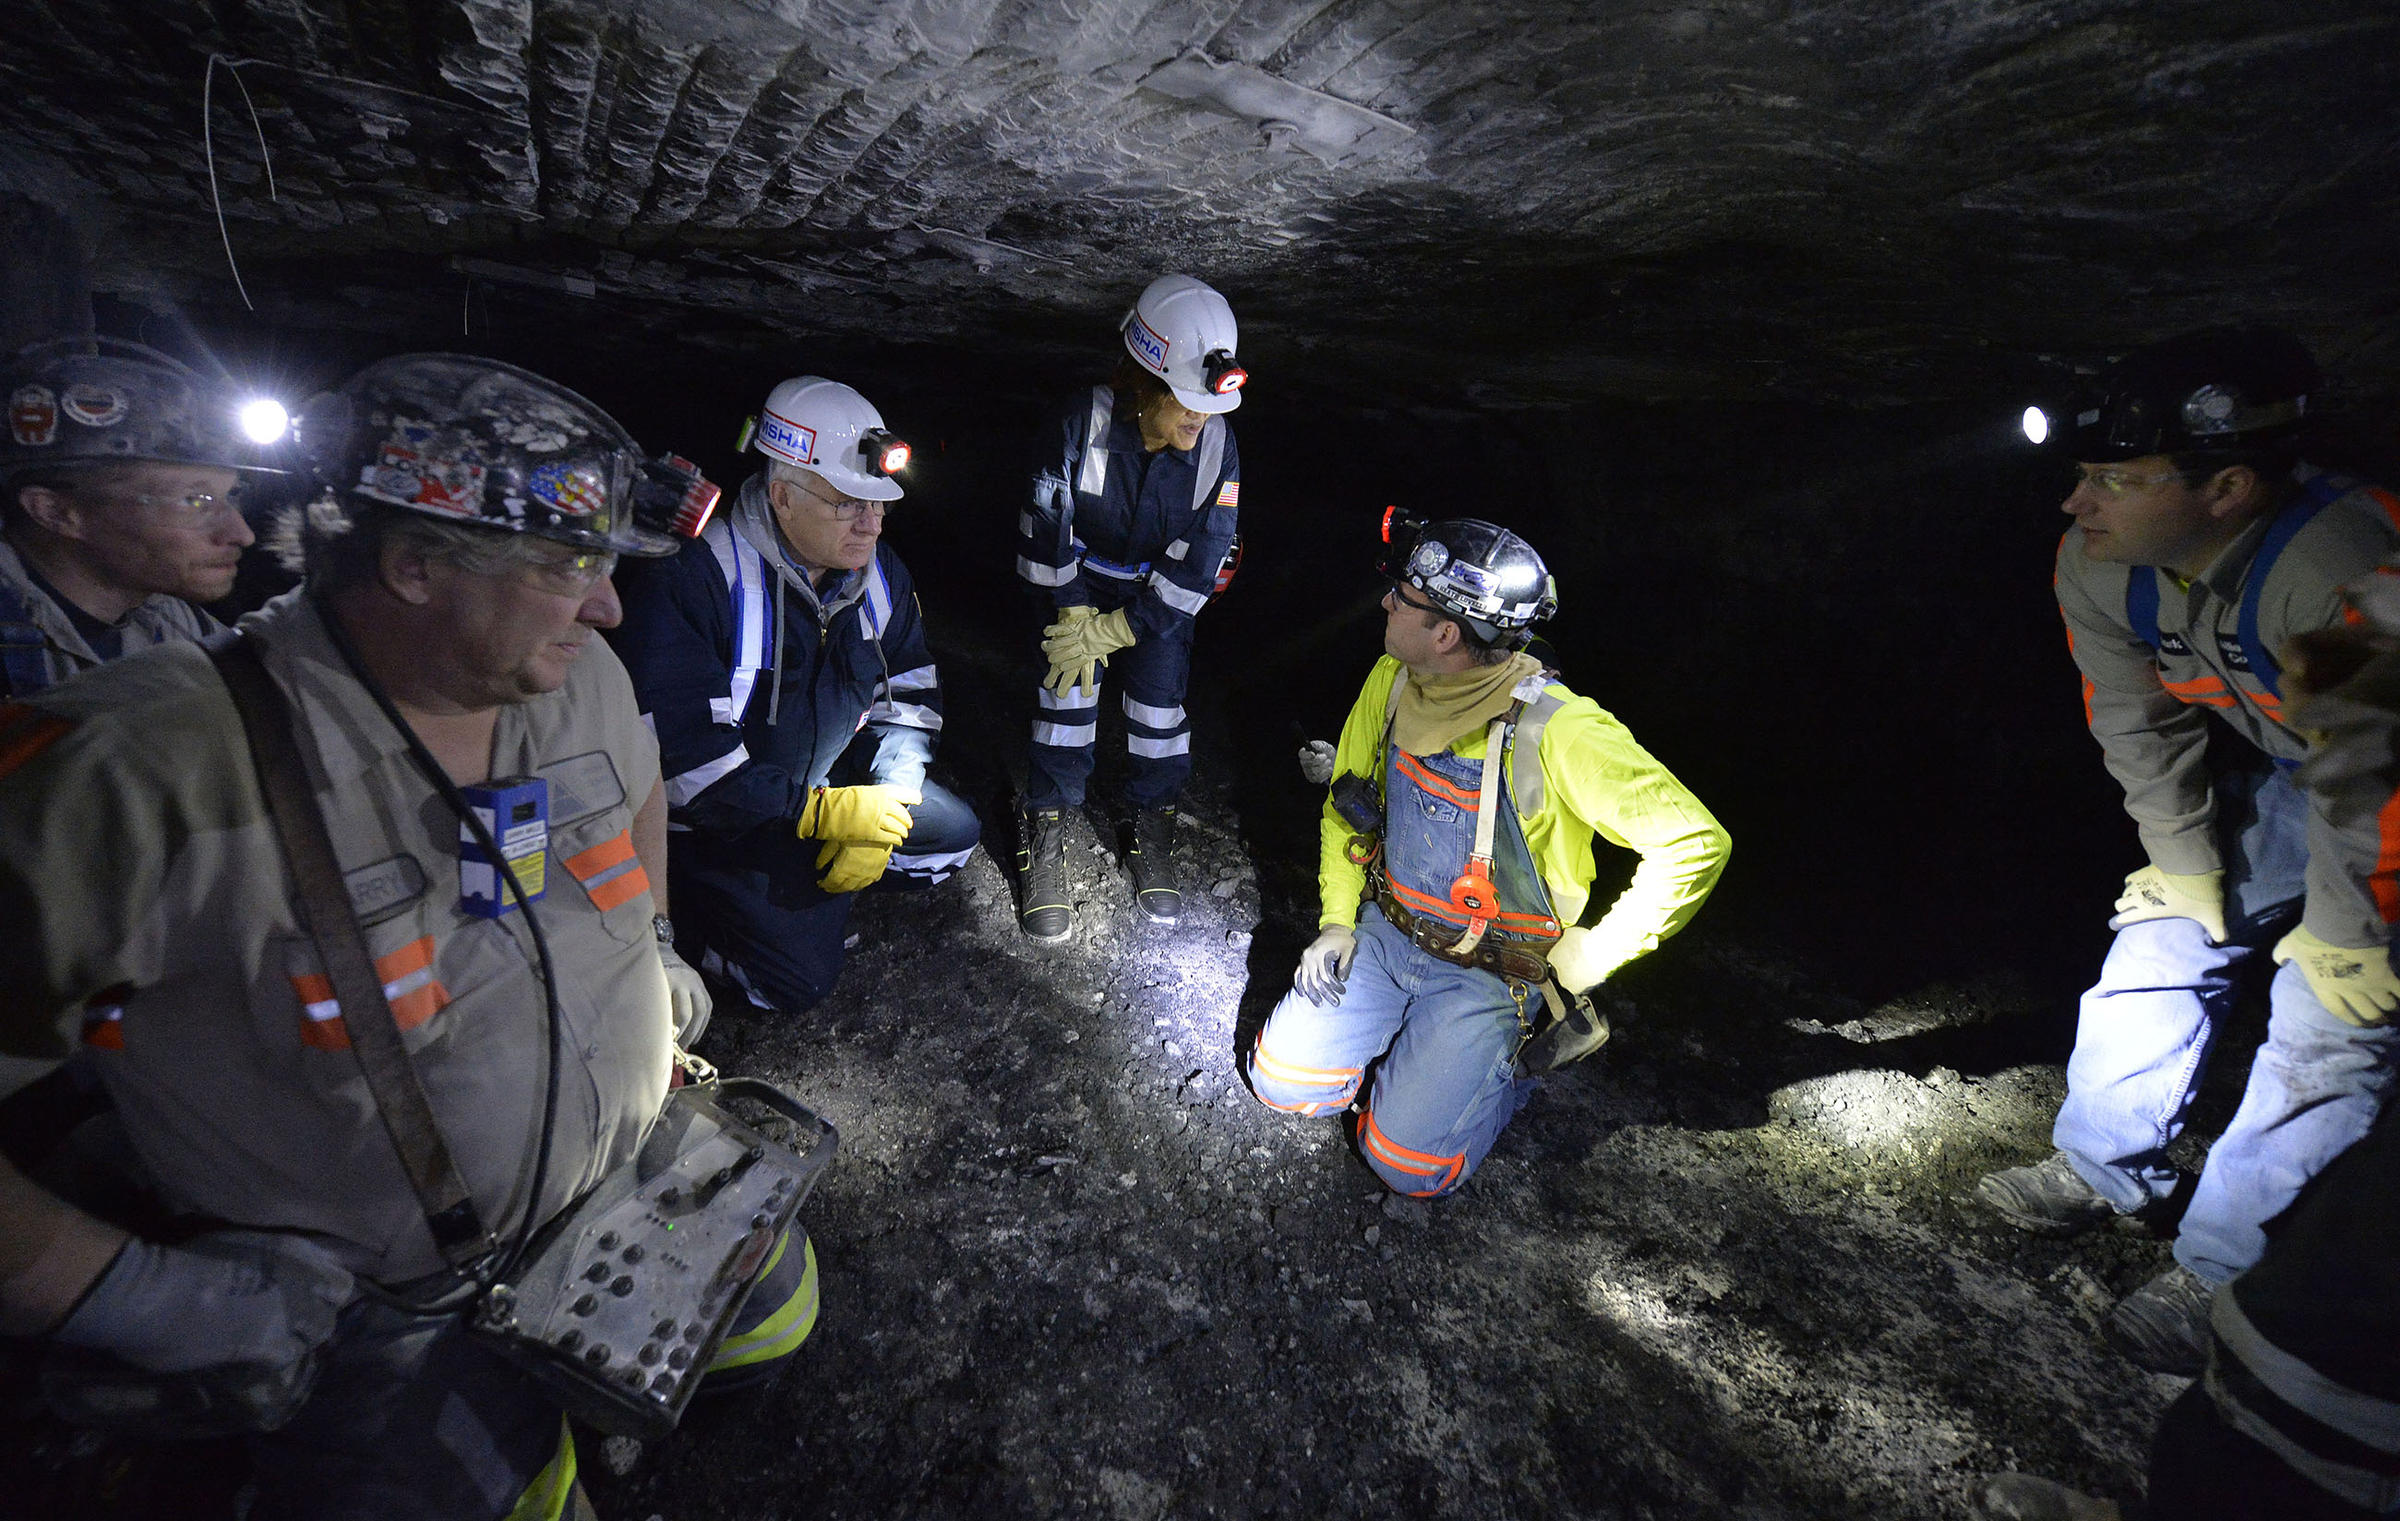 Abandoned Mines To Be Sites For Economic Development